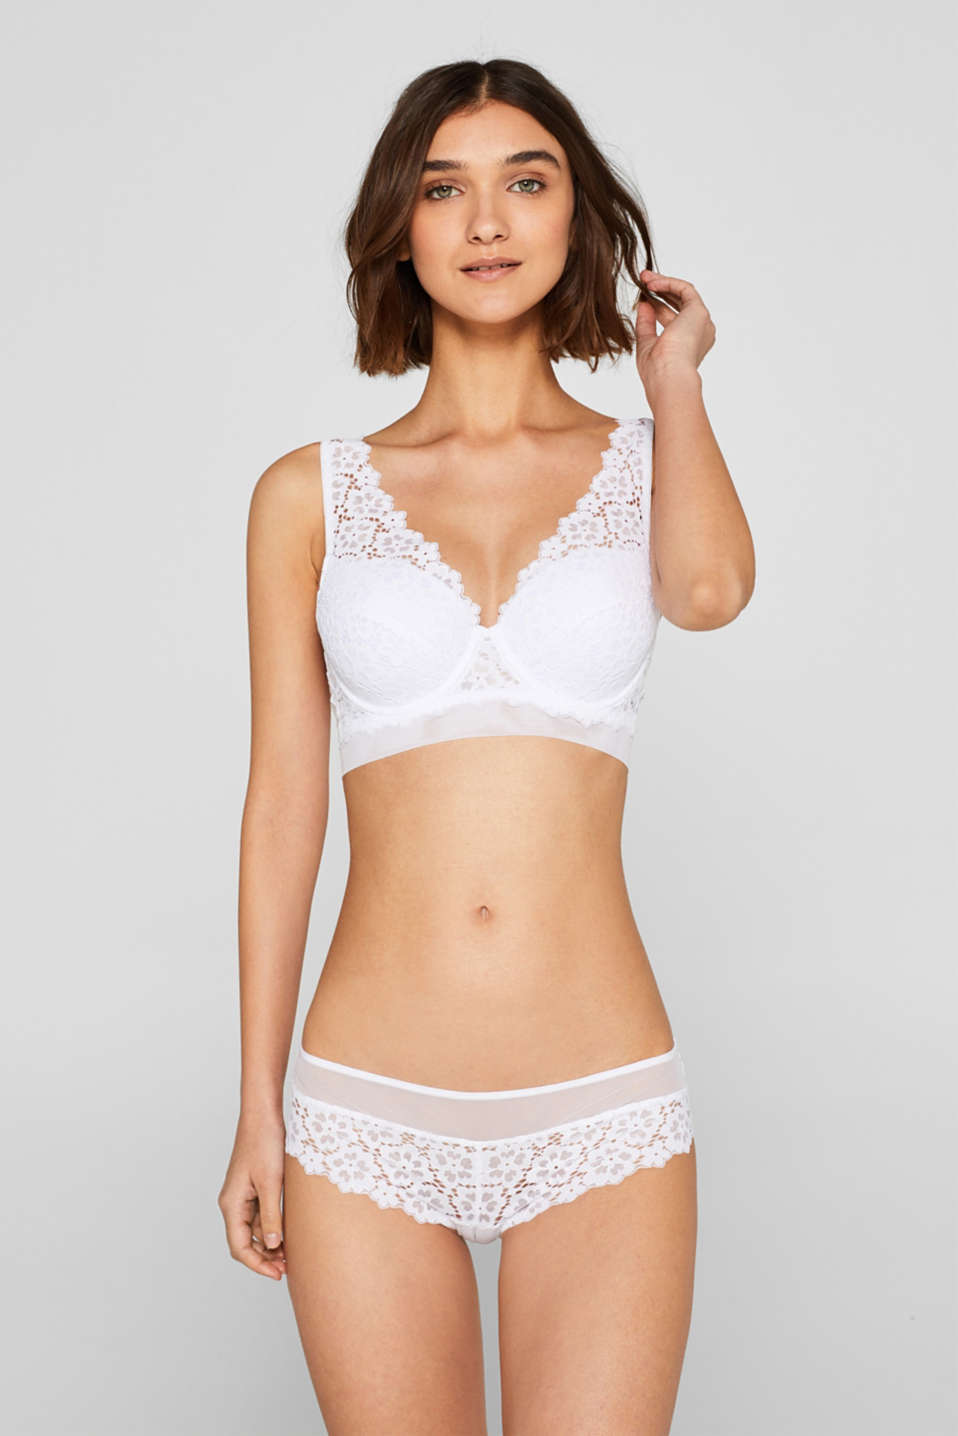 Esprit - Padded underwire bra made of lace and tulle